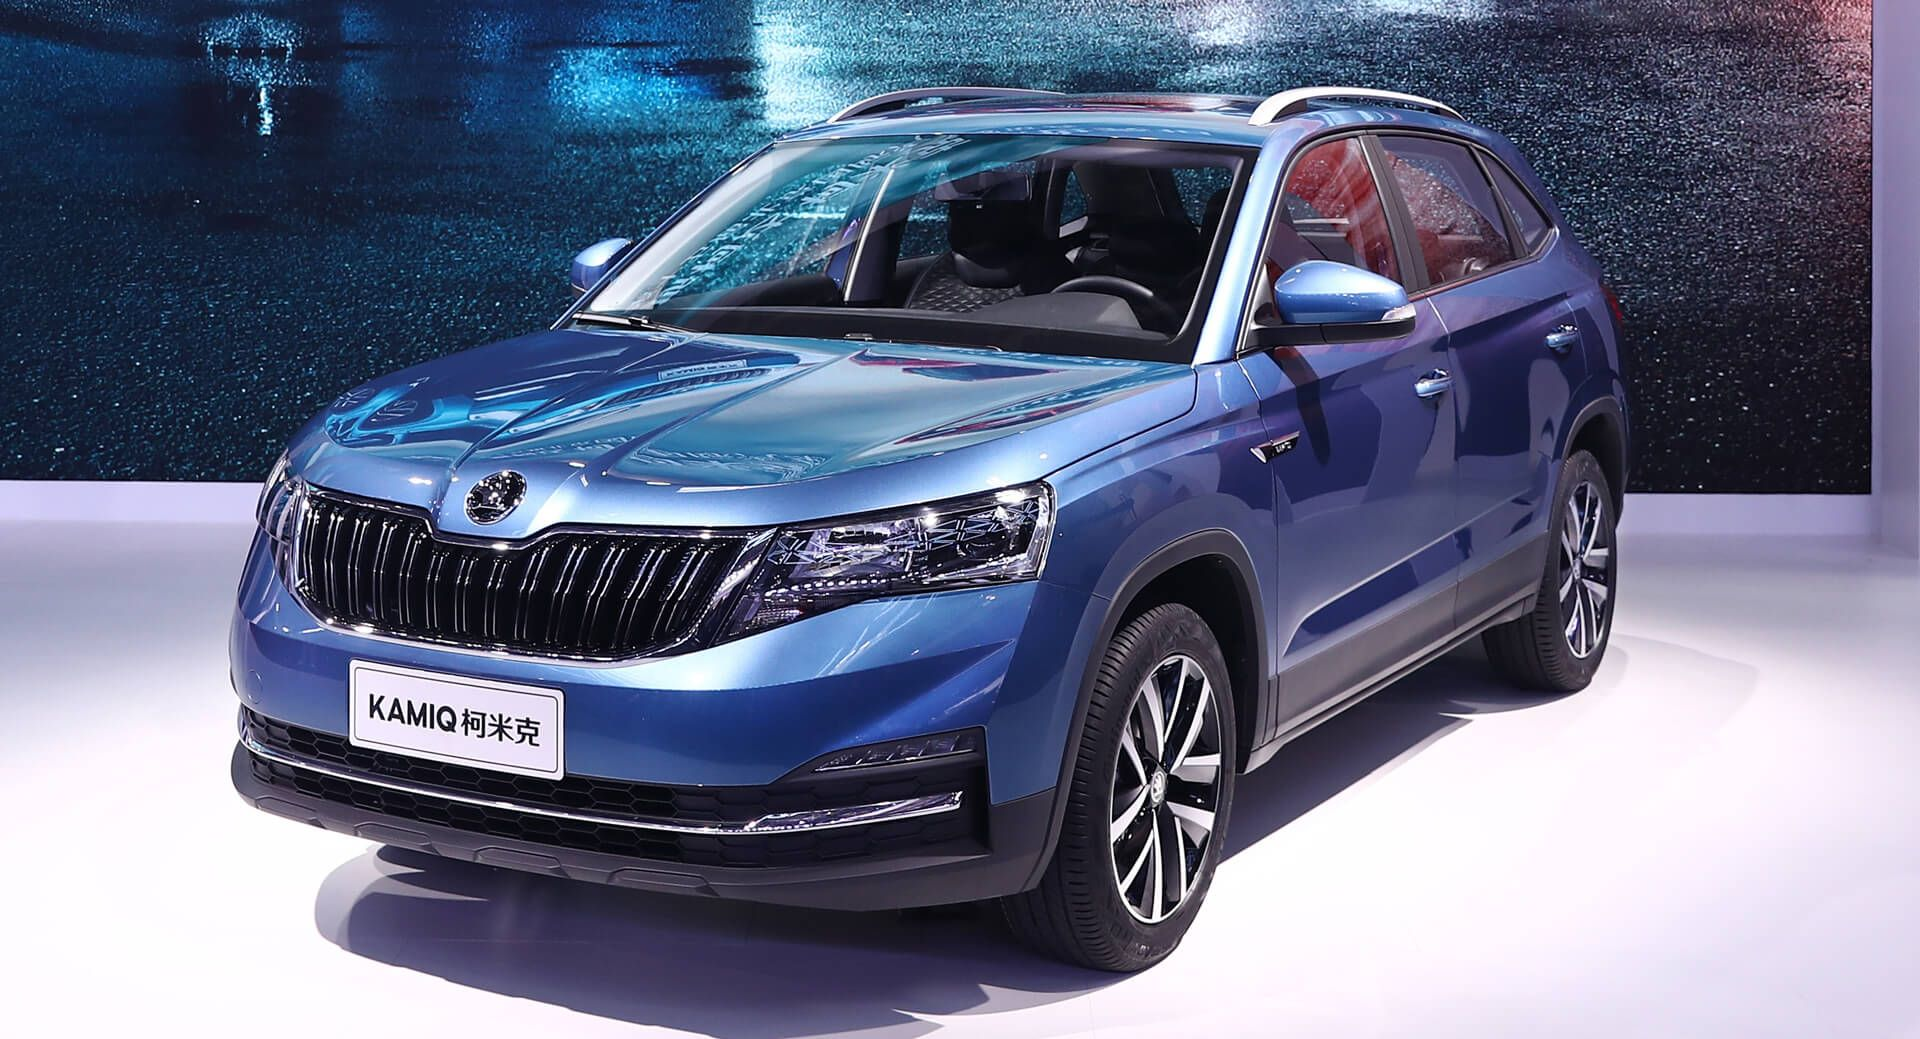 Skoda Kamiq Drives Into The Beijing Show With 1.5L Engine